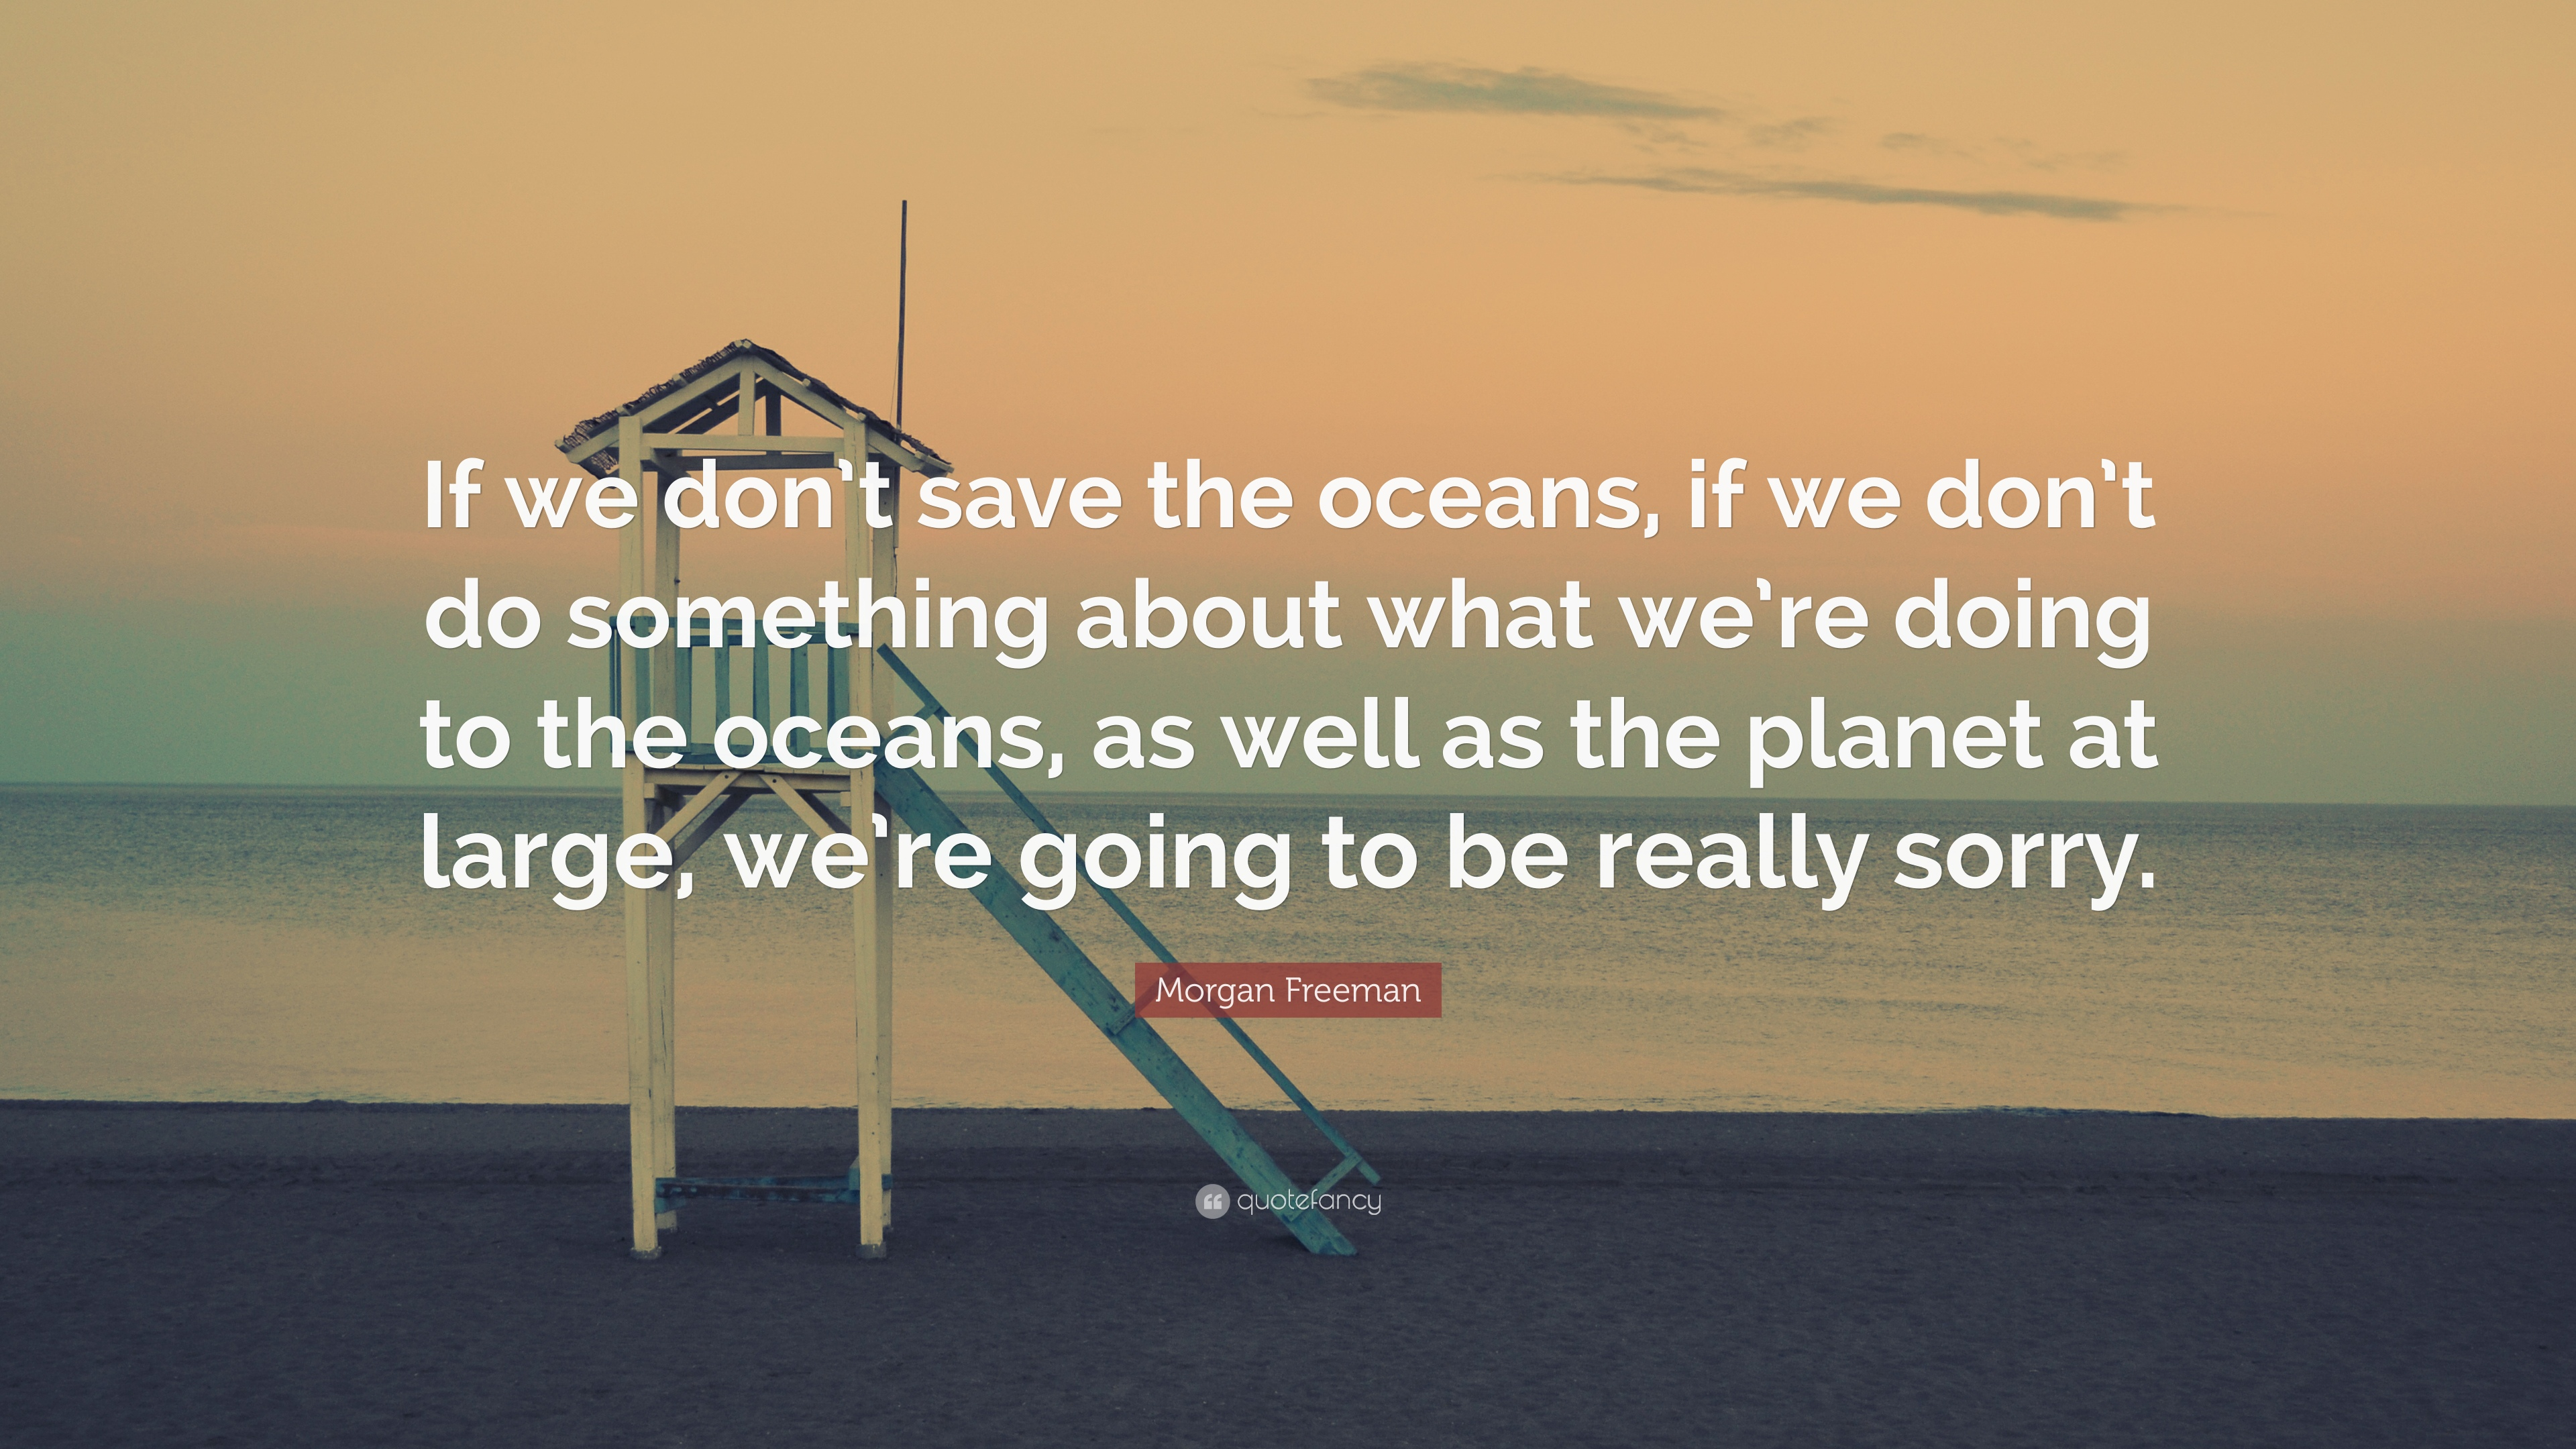 """Morgan Freeman Quote: """"If we don't save the oceans, if we don't do  something about what we're doing to the oceans, as well as the planet at  lar..."""""""